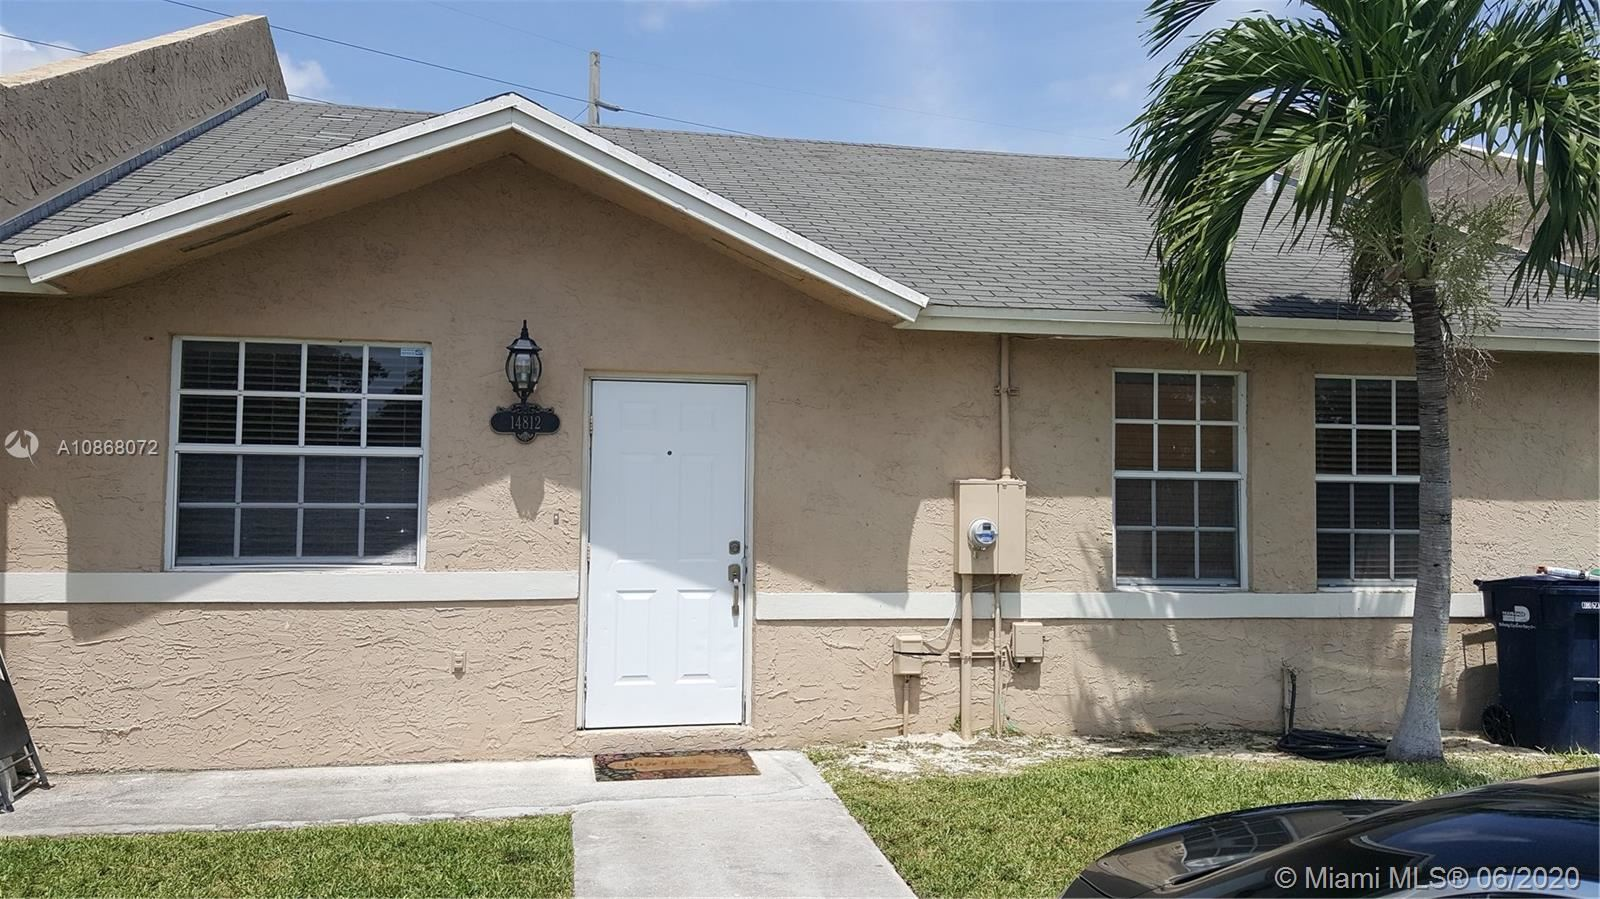 14812 SW 116th Ave, Miami, FL 33176 - #: A10868072